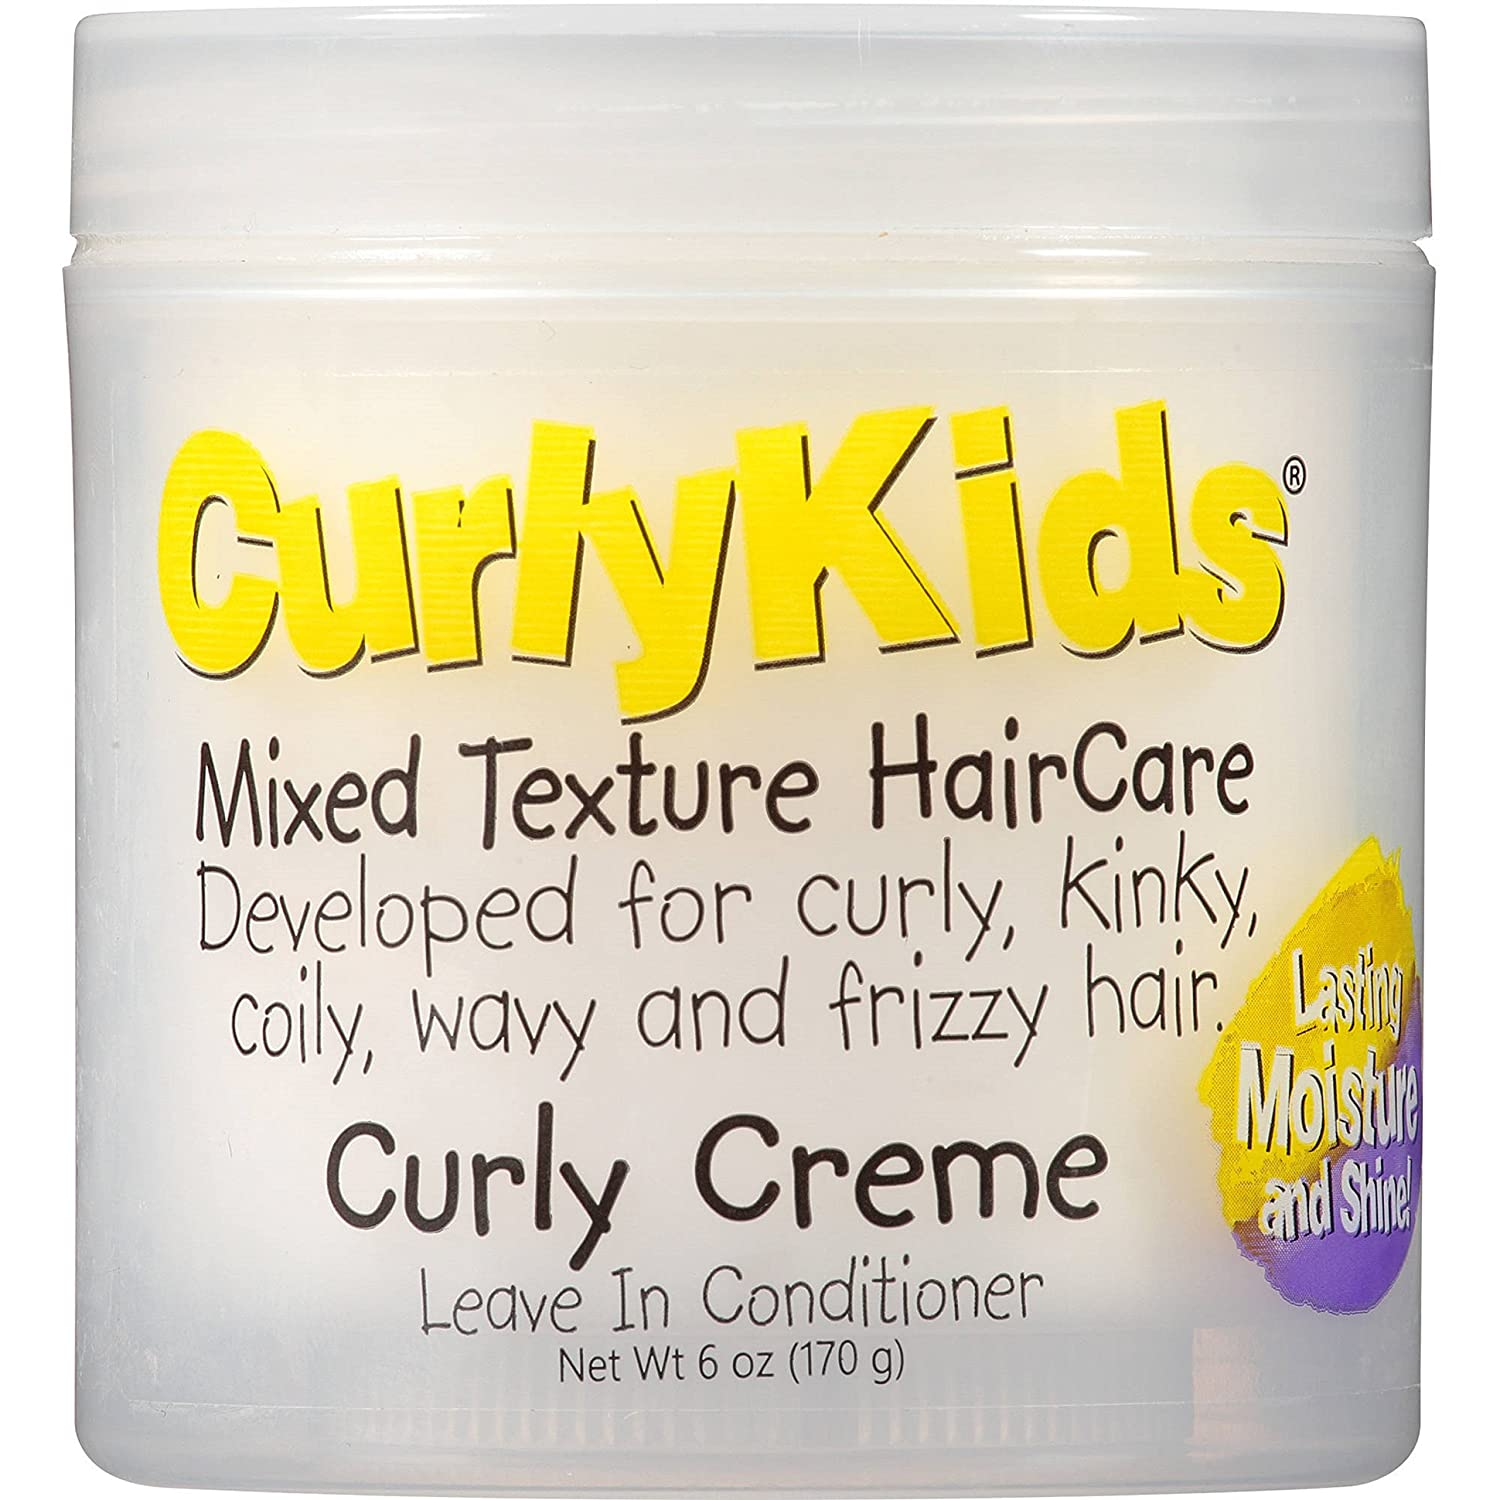 CurlyKids Mixed HairCare Curly Creme Conditioner 6oz by CurlyKids